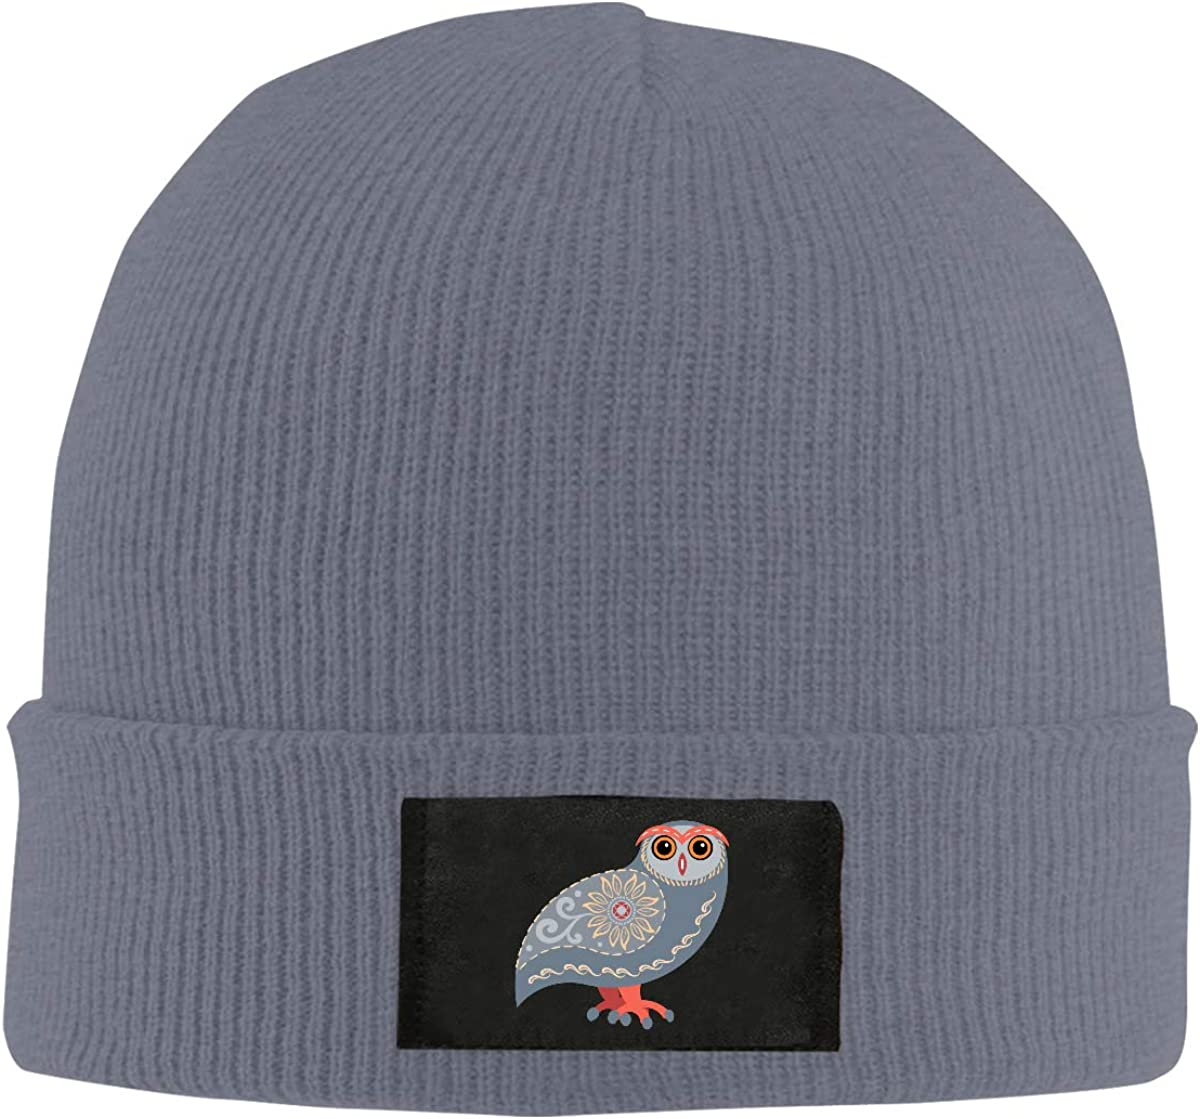 Owl Winter Knitted Hat Warm Wool Skull Beanie Cap